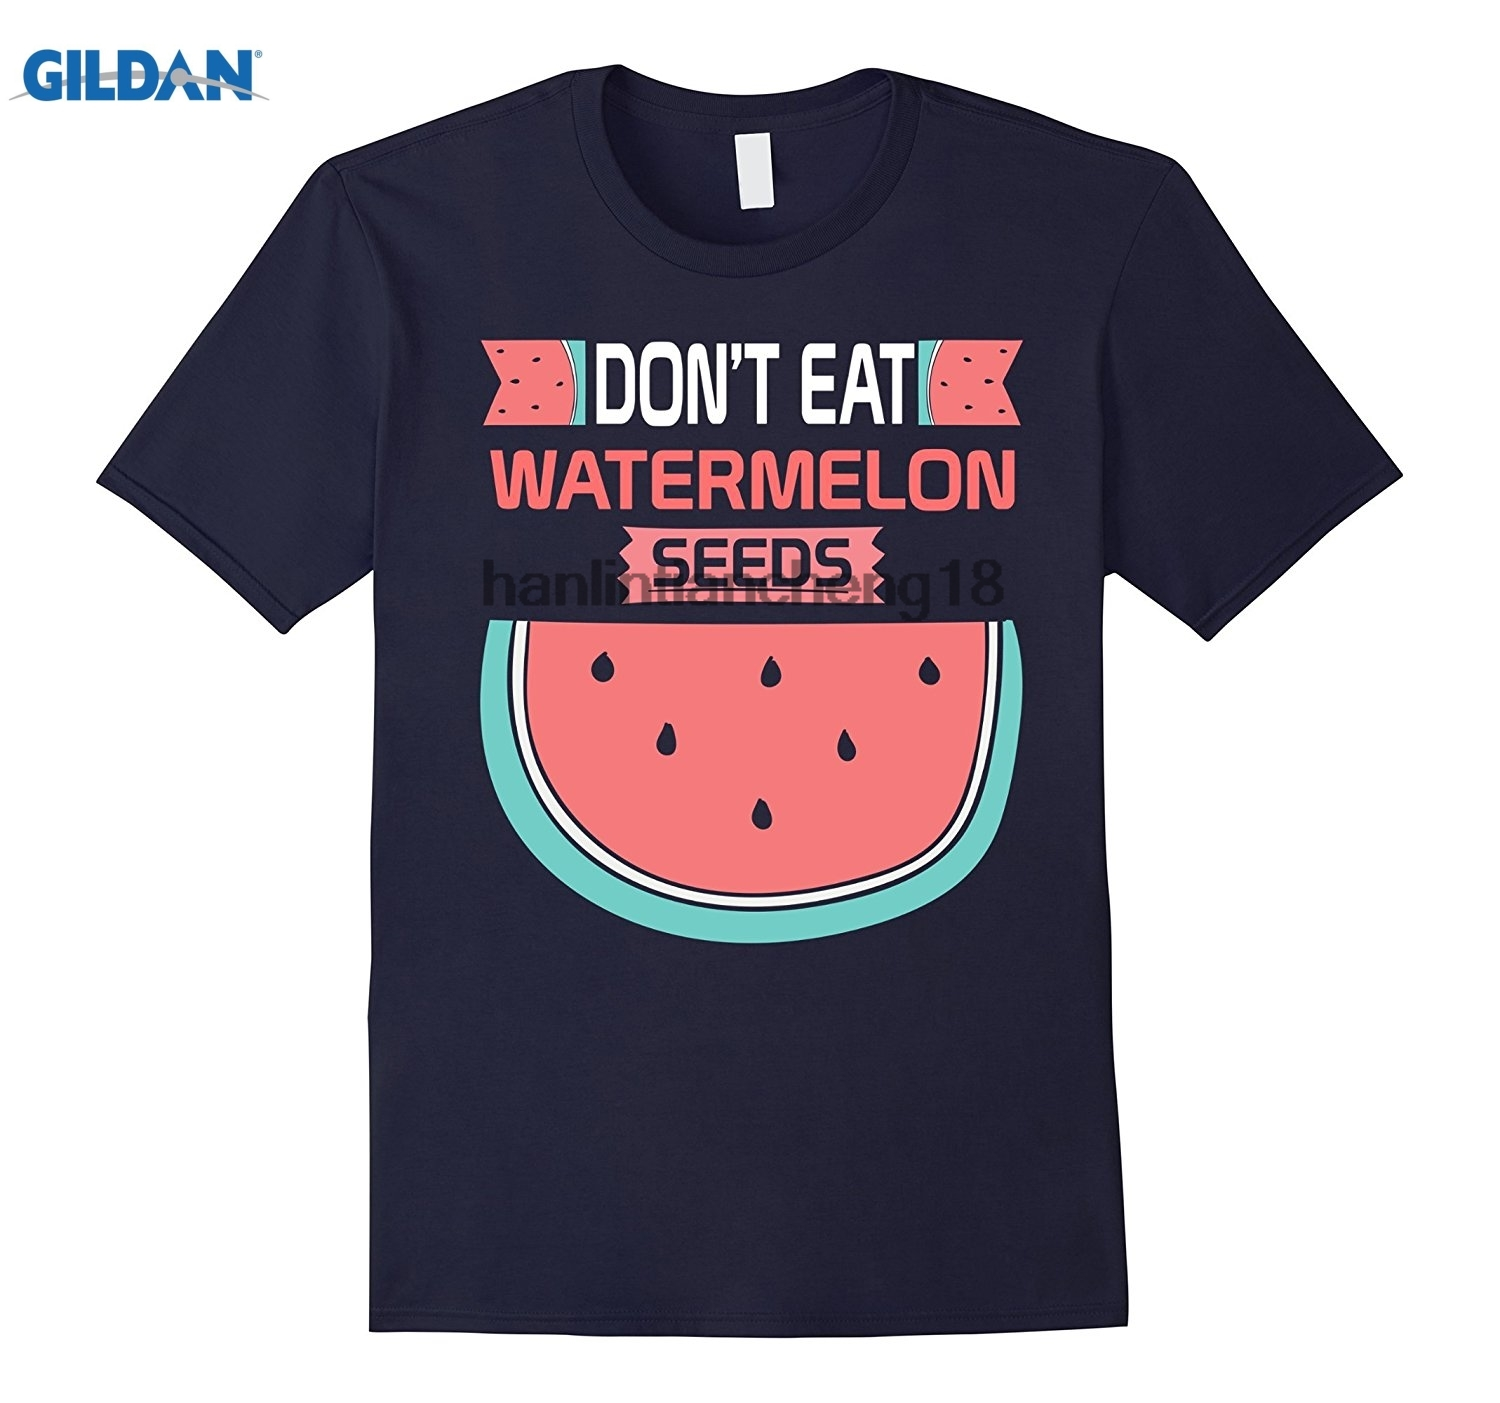 GILDAN 2018 Dont Eat Watermelon Seeds Maternity Shirt Funny Pregnancy ...